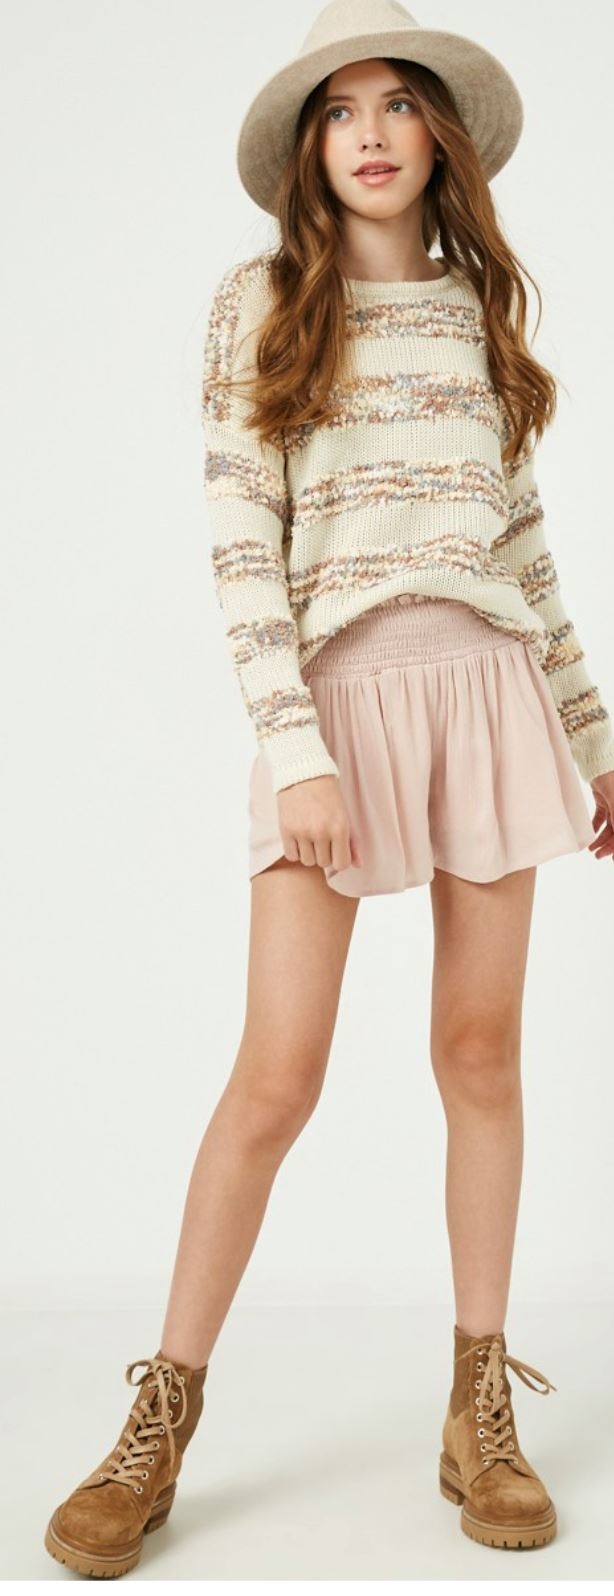 Tween Smocked Shorts SNAP-Something New And Pretty